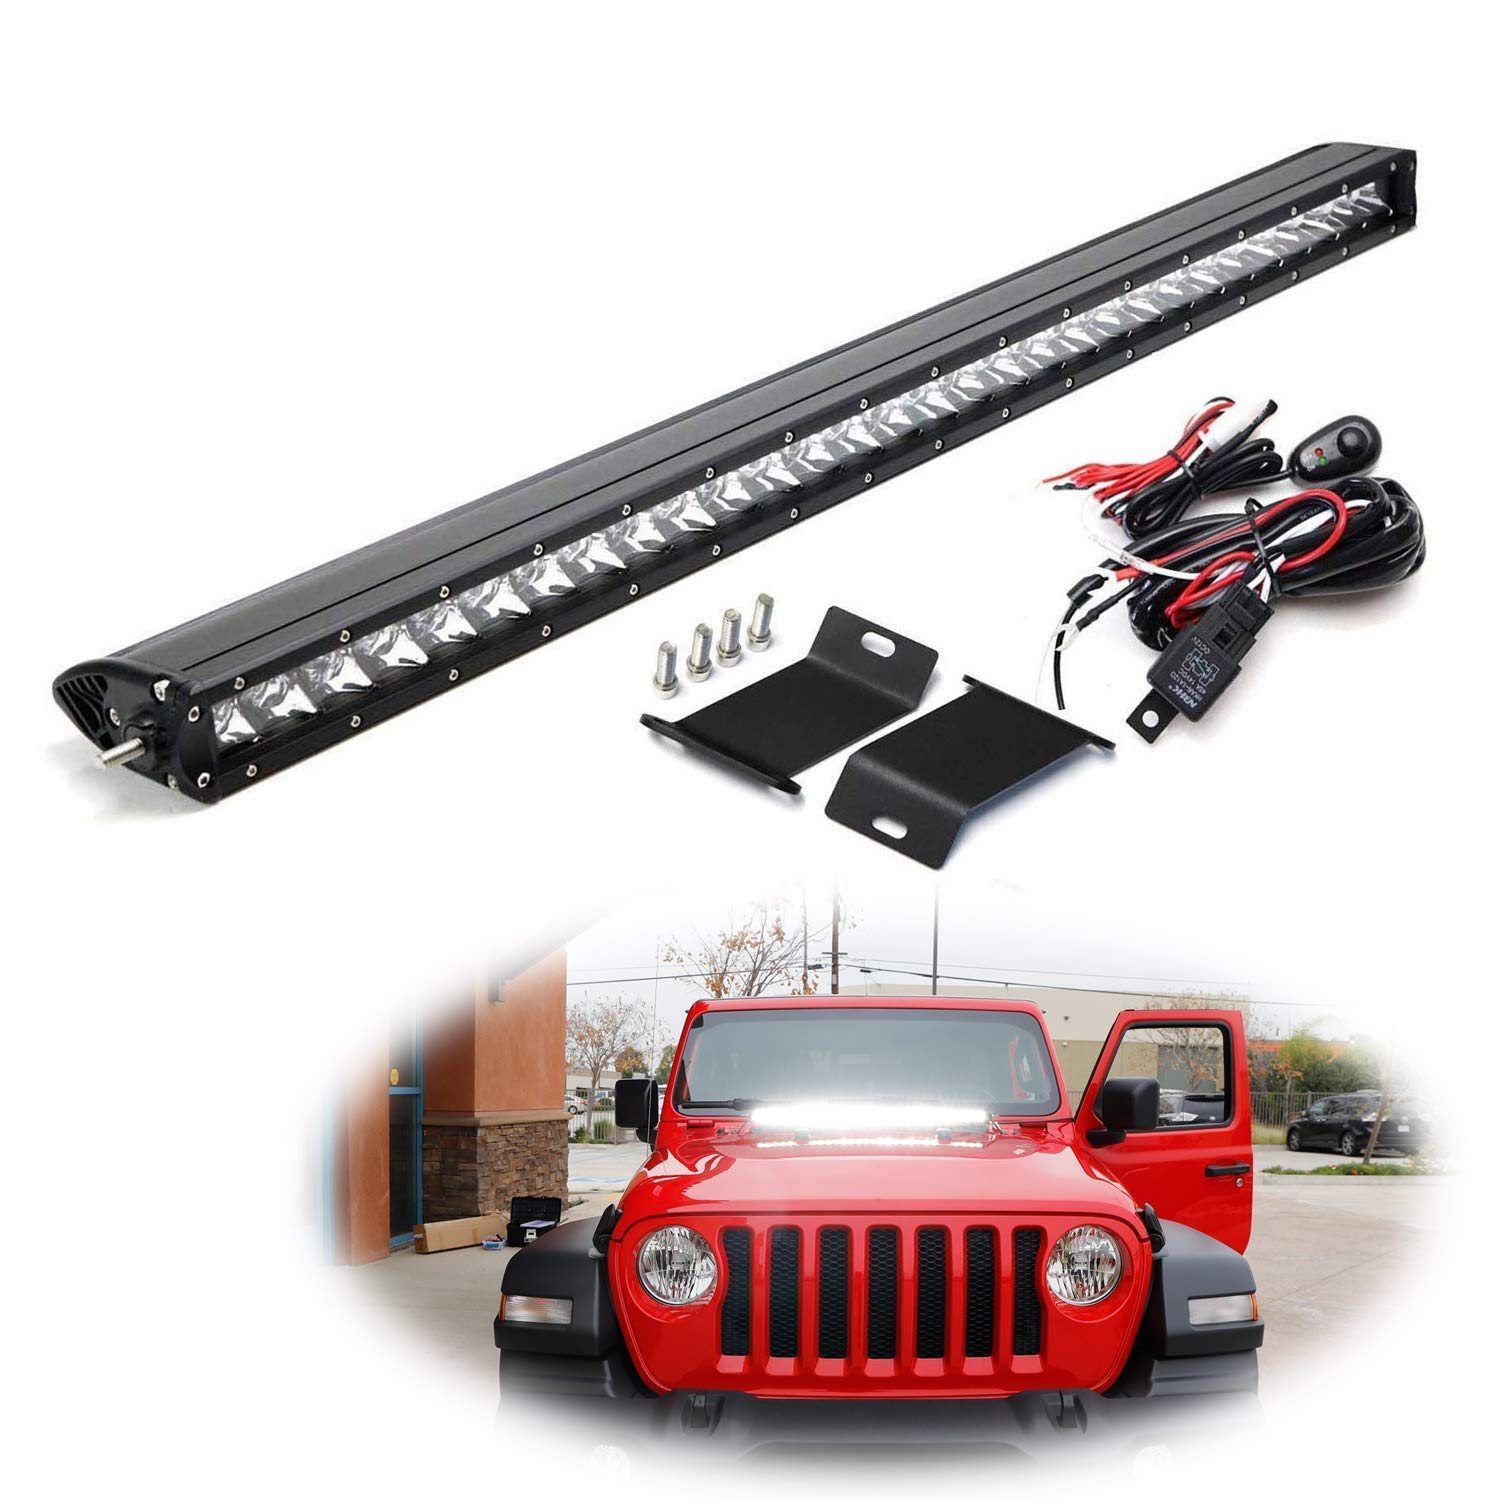 iJDMTOY Hood Mount 30-Inch LED Light Bar Kit Compatible With 2018-up Jeep Wrangler JL, Includes (1) 150W High Power CREE LED Lightbar, Hood Mounting Brackets & On/Off Switch Wiring Kit